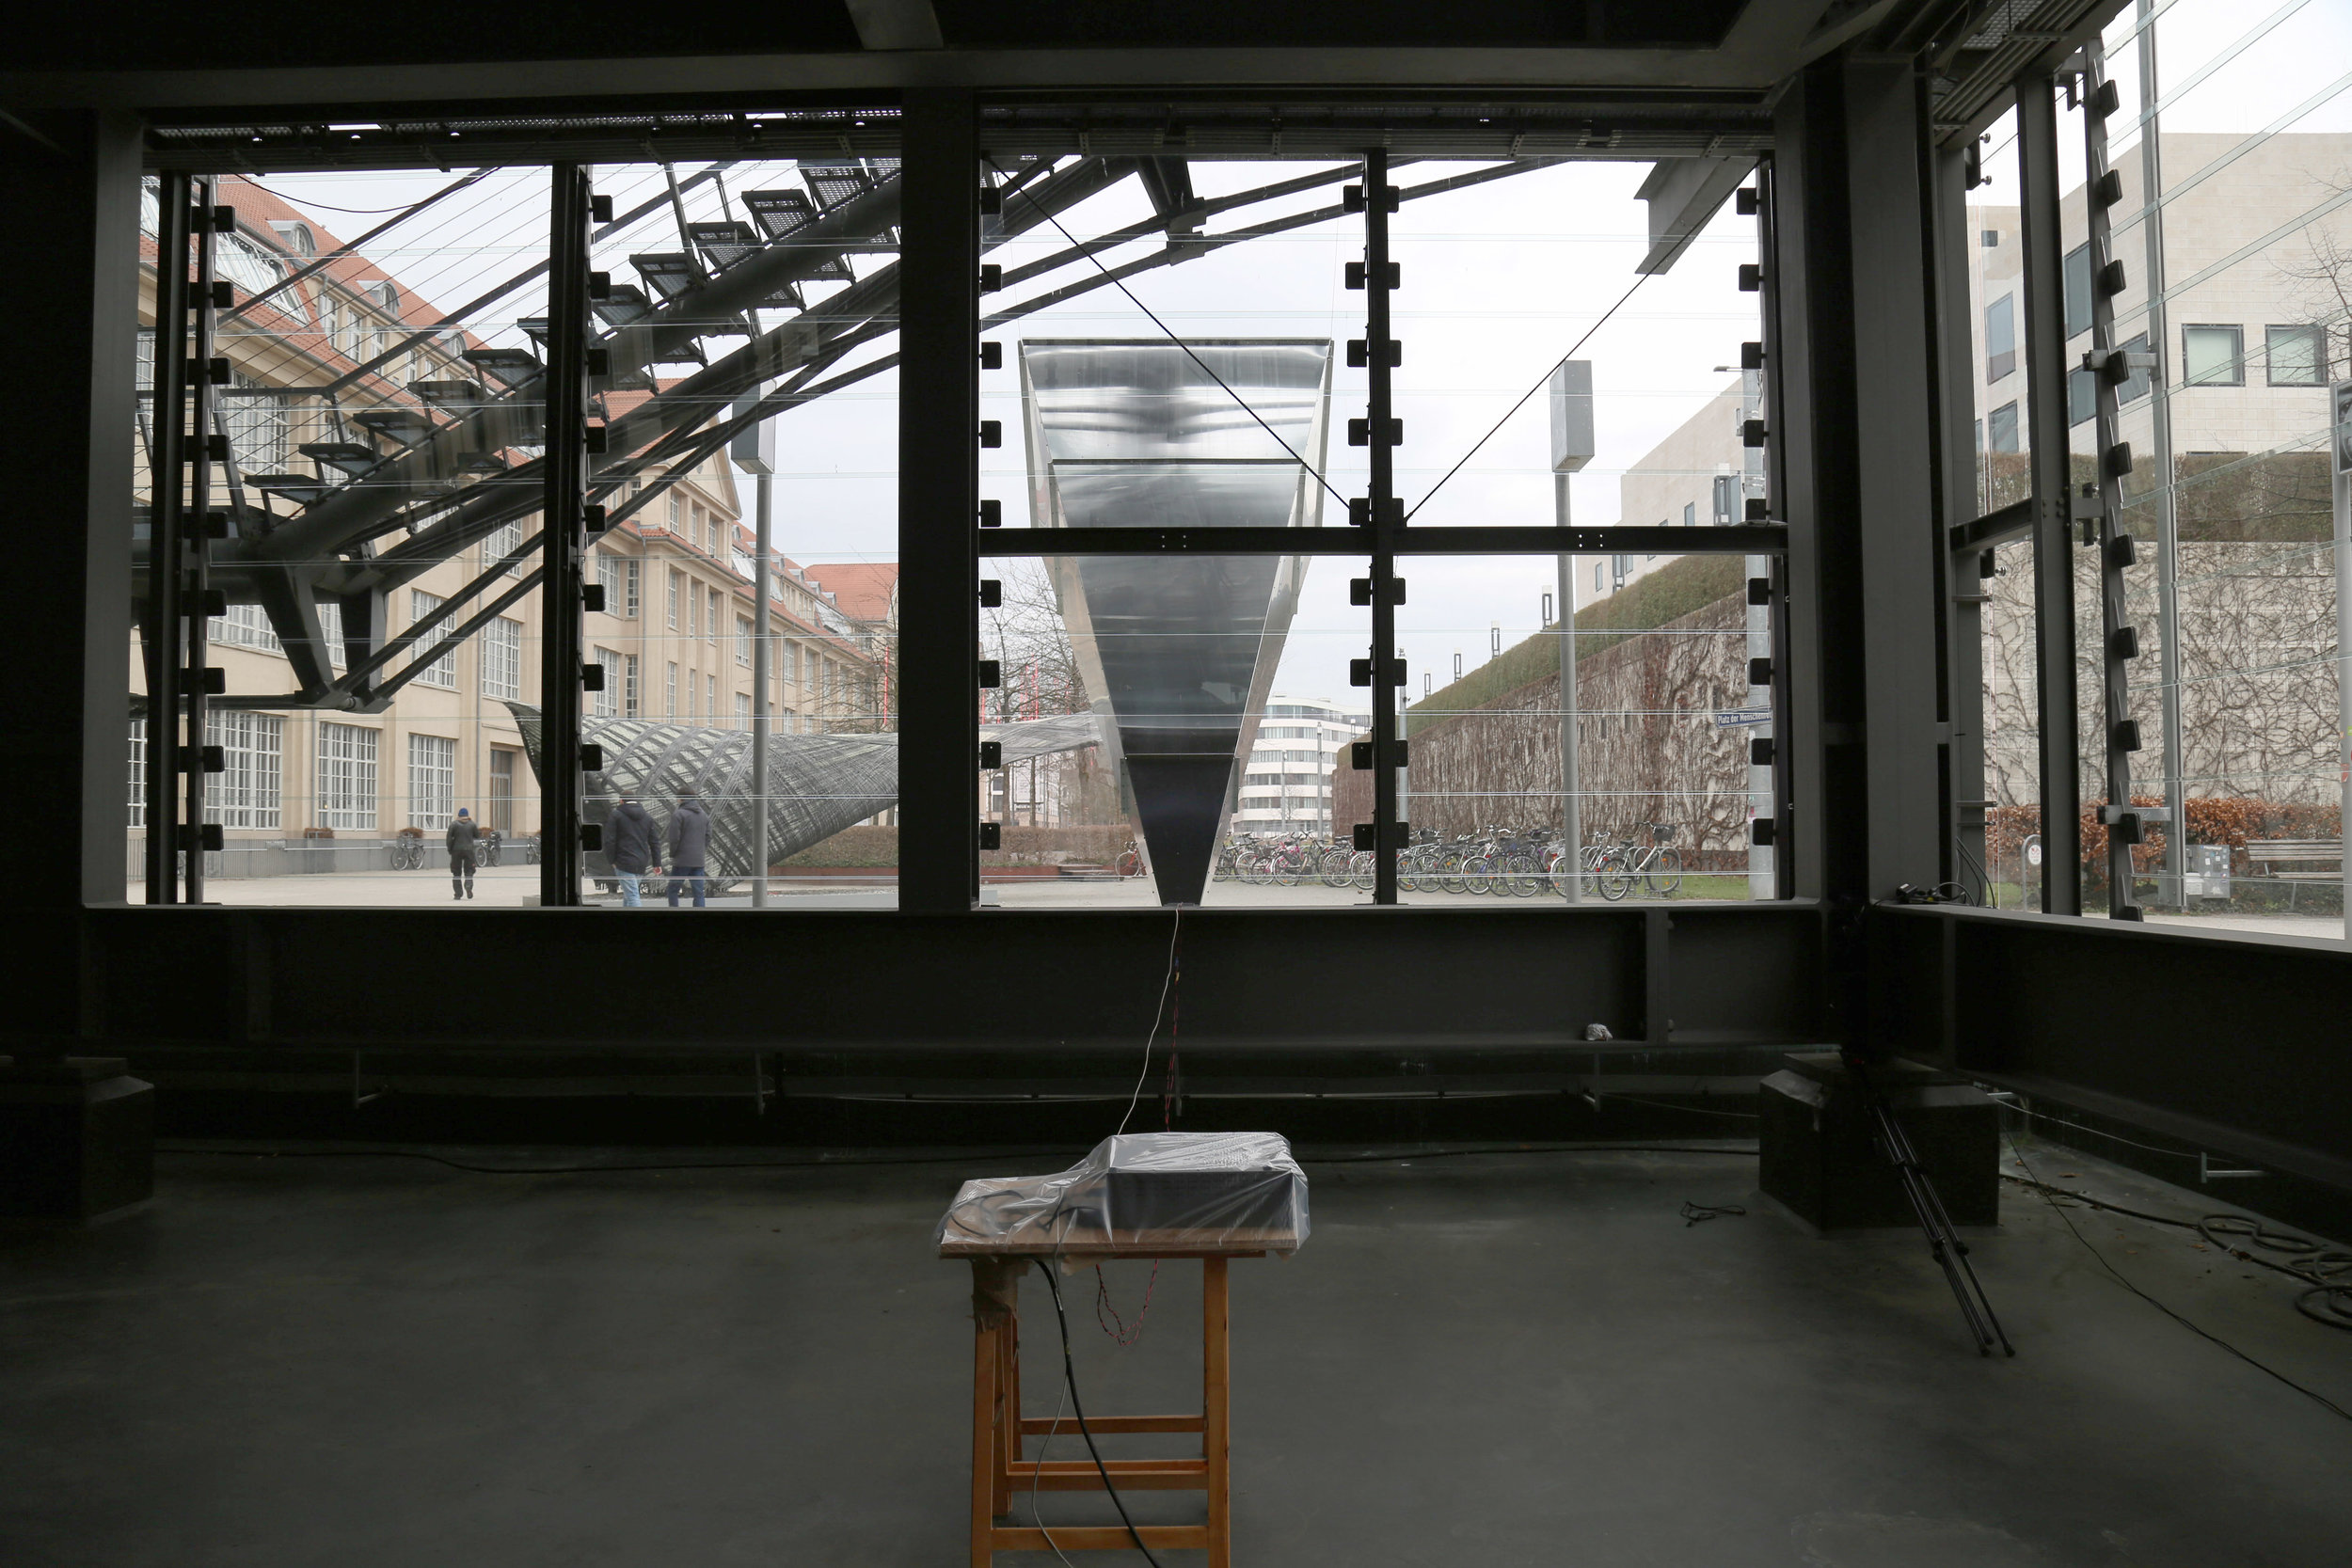 Radio Painting Station: Looking for the Waterhole, ZKM, Karlsruhe, Germany, 2017 - 2018